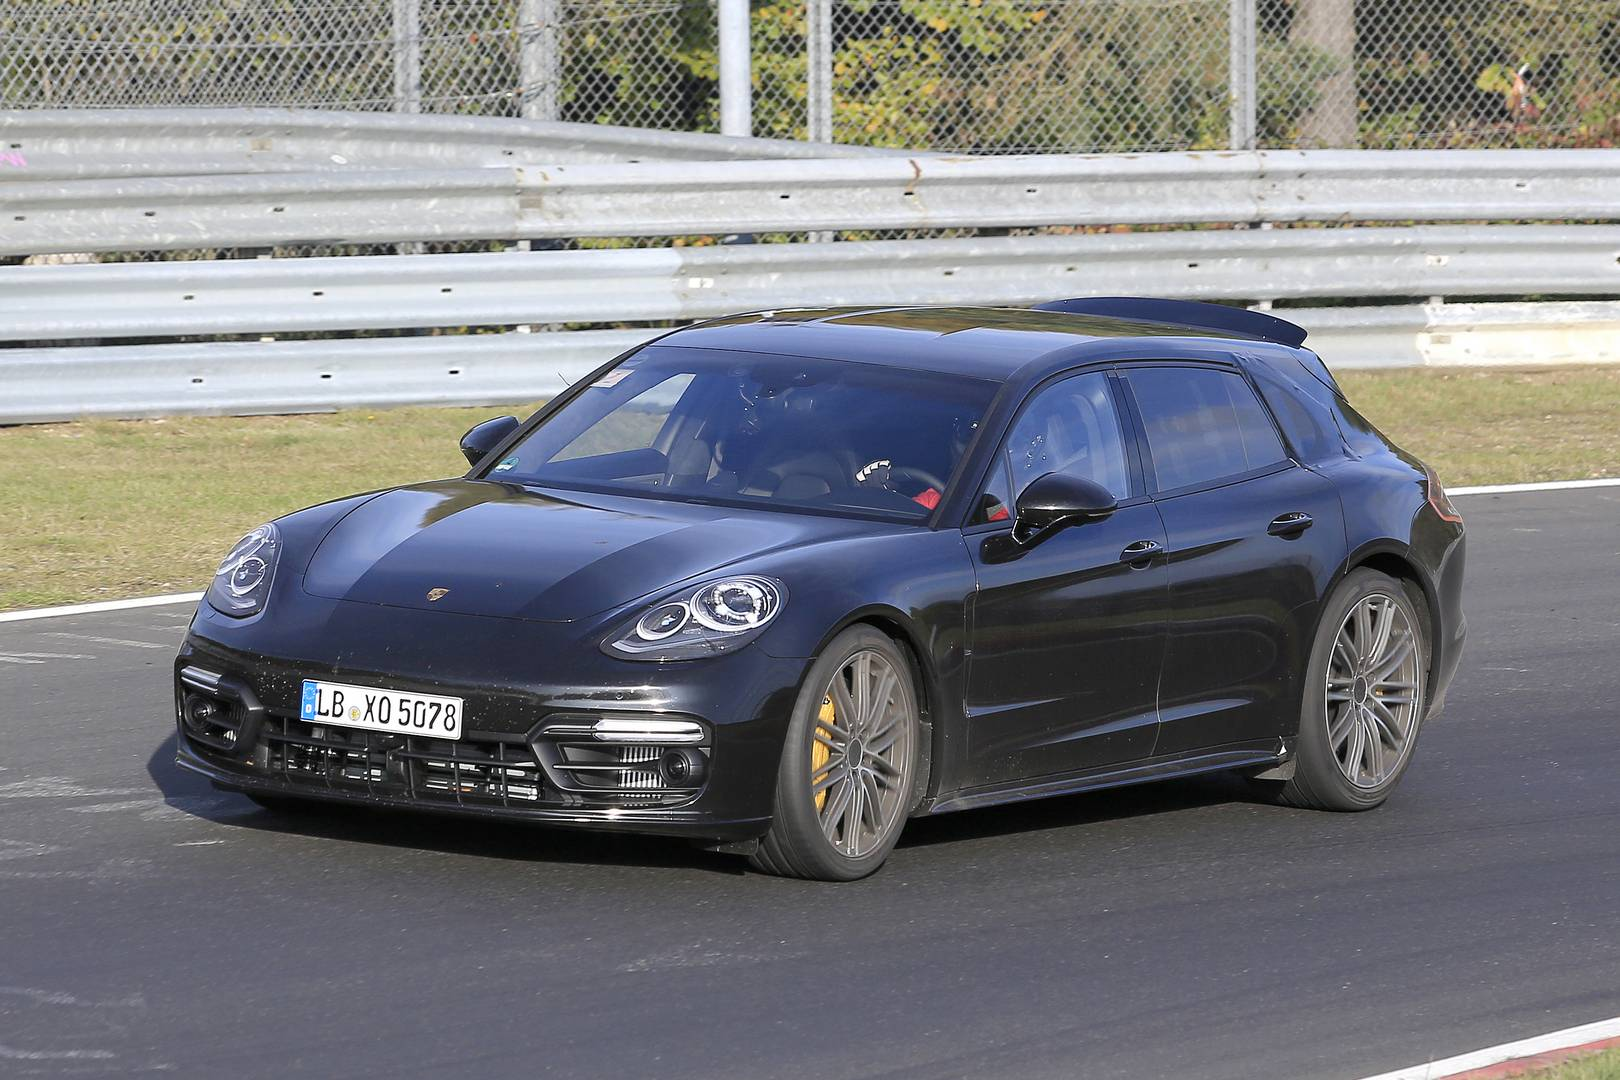 Porsche Panamera Shooting Brake – New Spy Shots